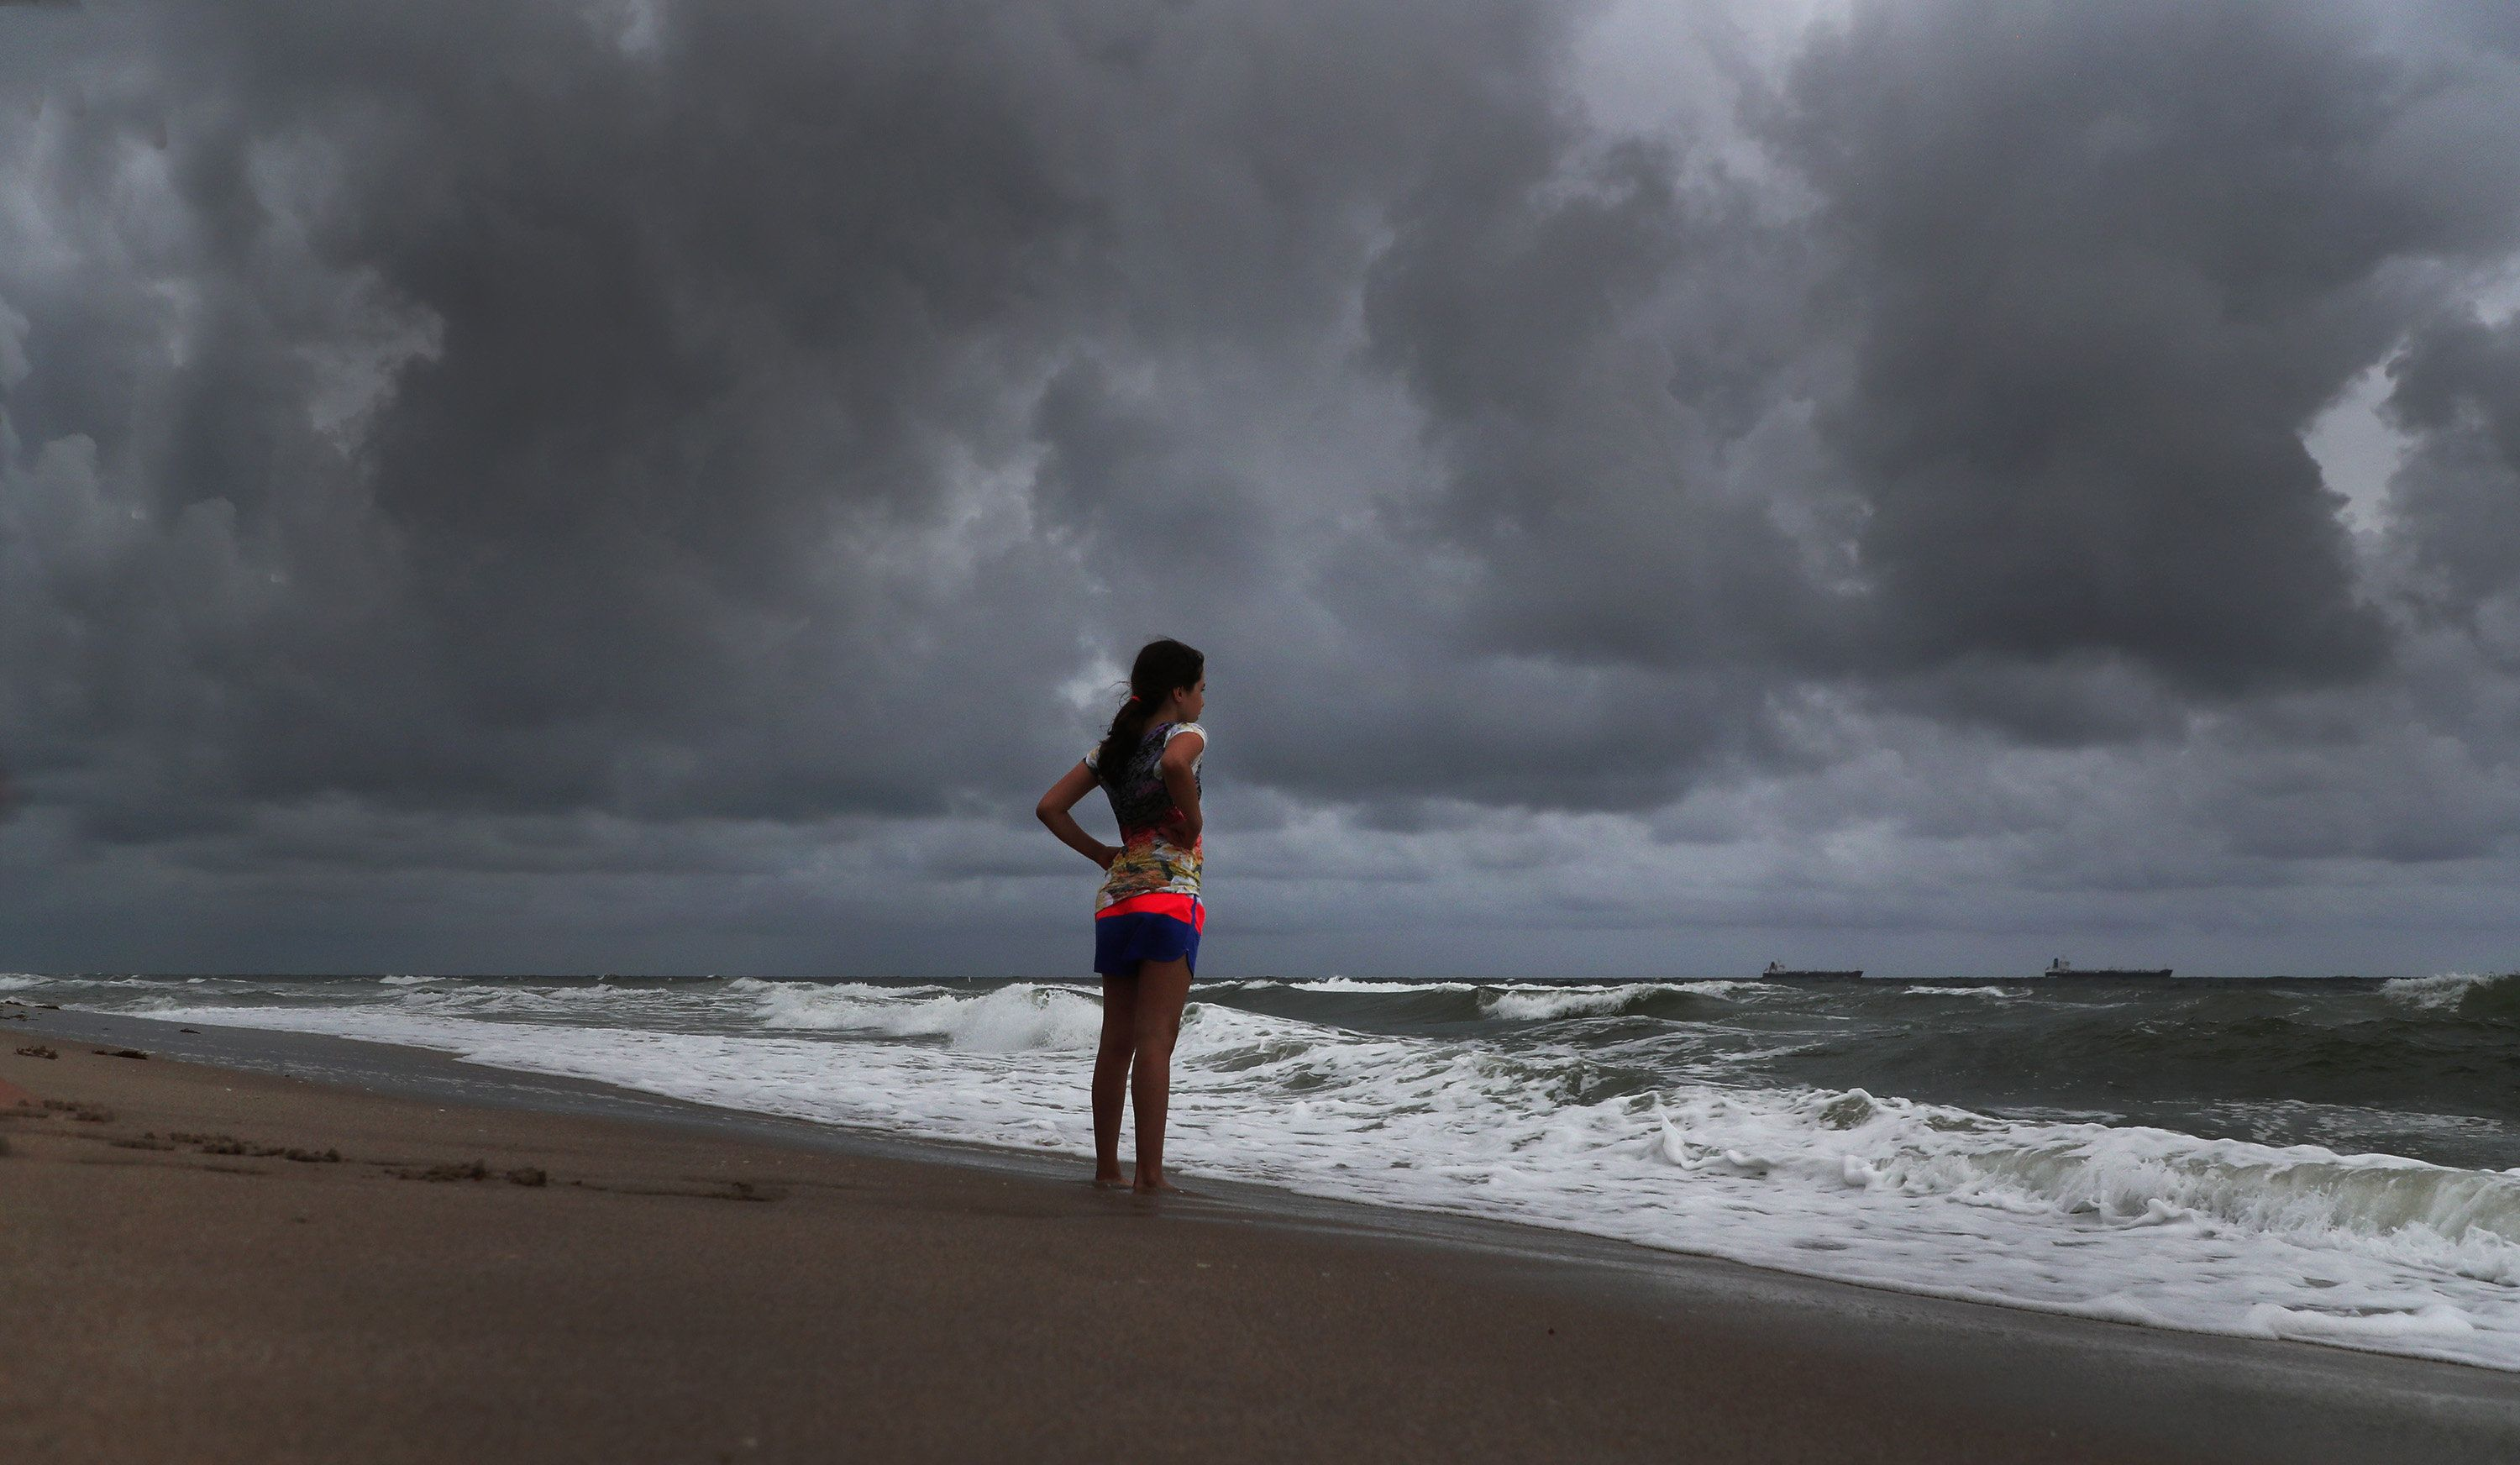 Alicia Herrera, 10, visiting from Germany doesn't let  dark clouds ruin her day at beach Friday, May 25, 2018 in Fort Lauderdale, Fla. A flood watch is expected for South Florida on Saturday morning as a result of Subtropical Storm Alberto. (Carline Jean/Sun Sentinel/TNS via Getty Images)